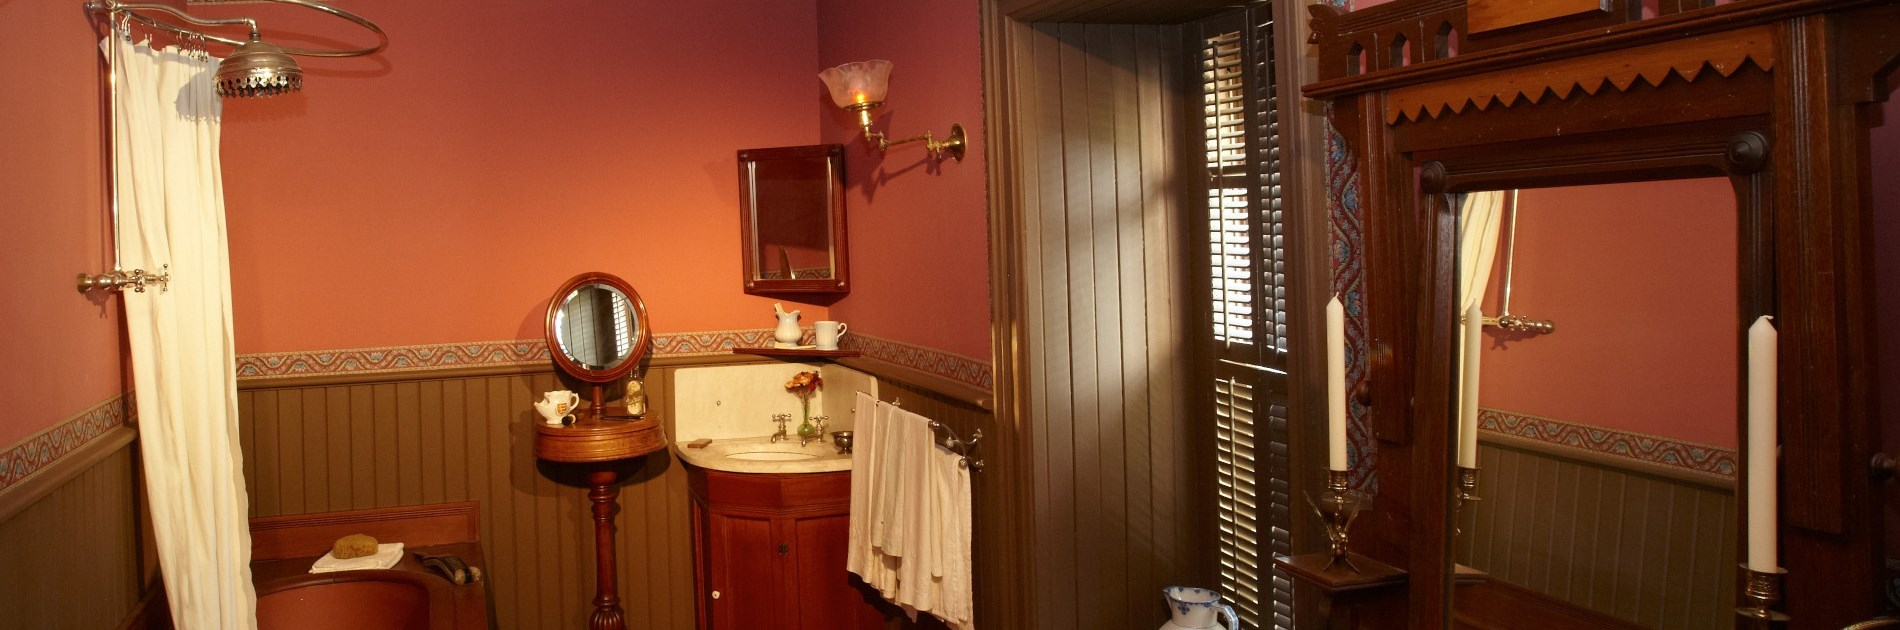 Master Bathroom at Glanmore